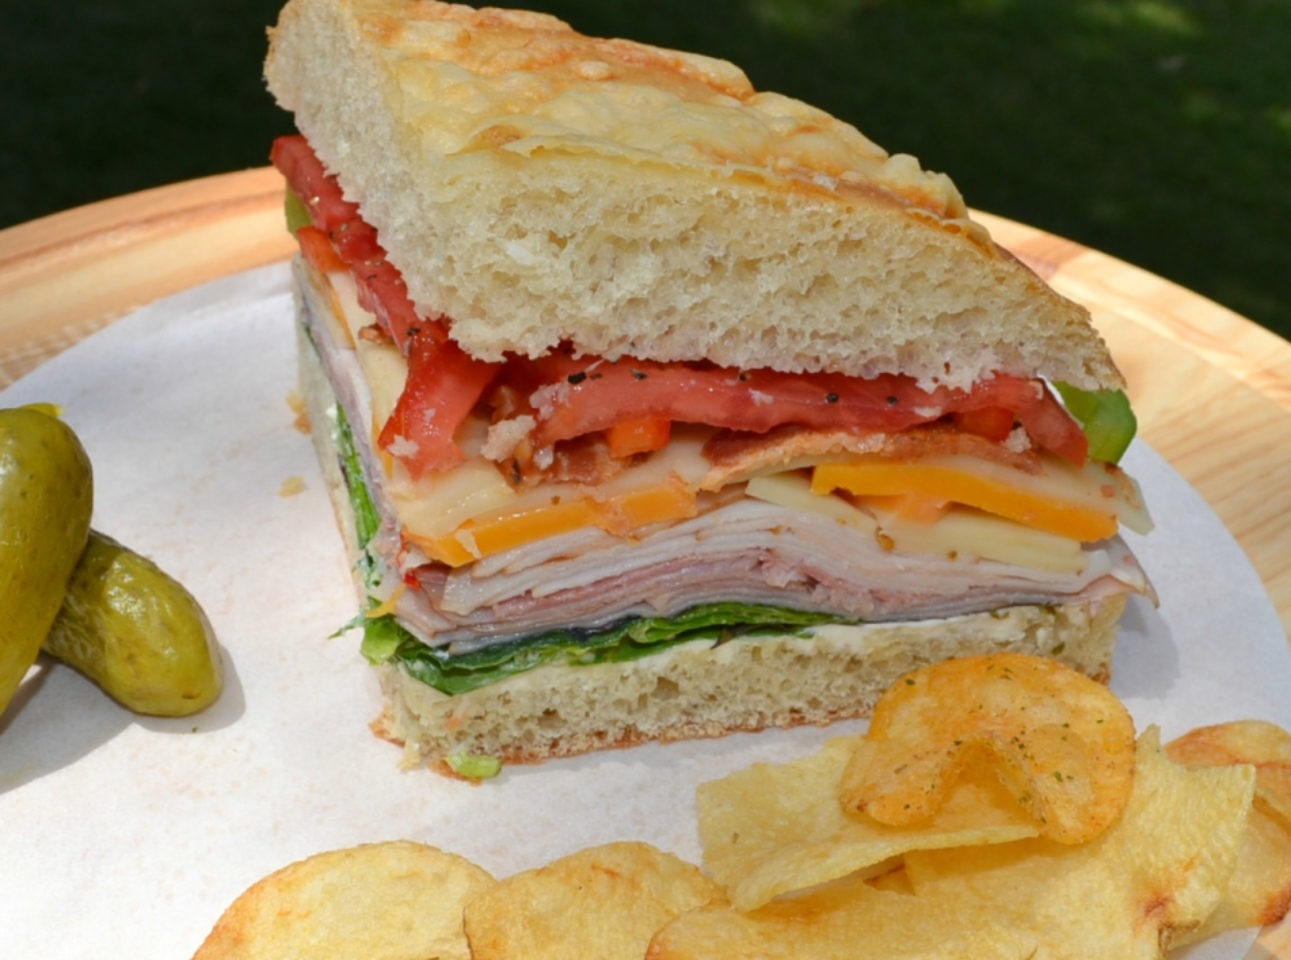 Picnic Foccacia Sandwich is loaded with meats, cheeses,and veggies. Made on a foccia loaf, drizzled with italian dressing and cut into beautiful wedges.